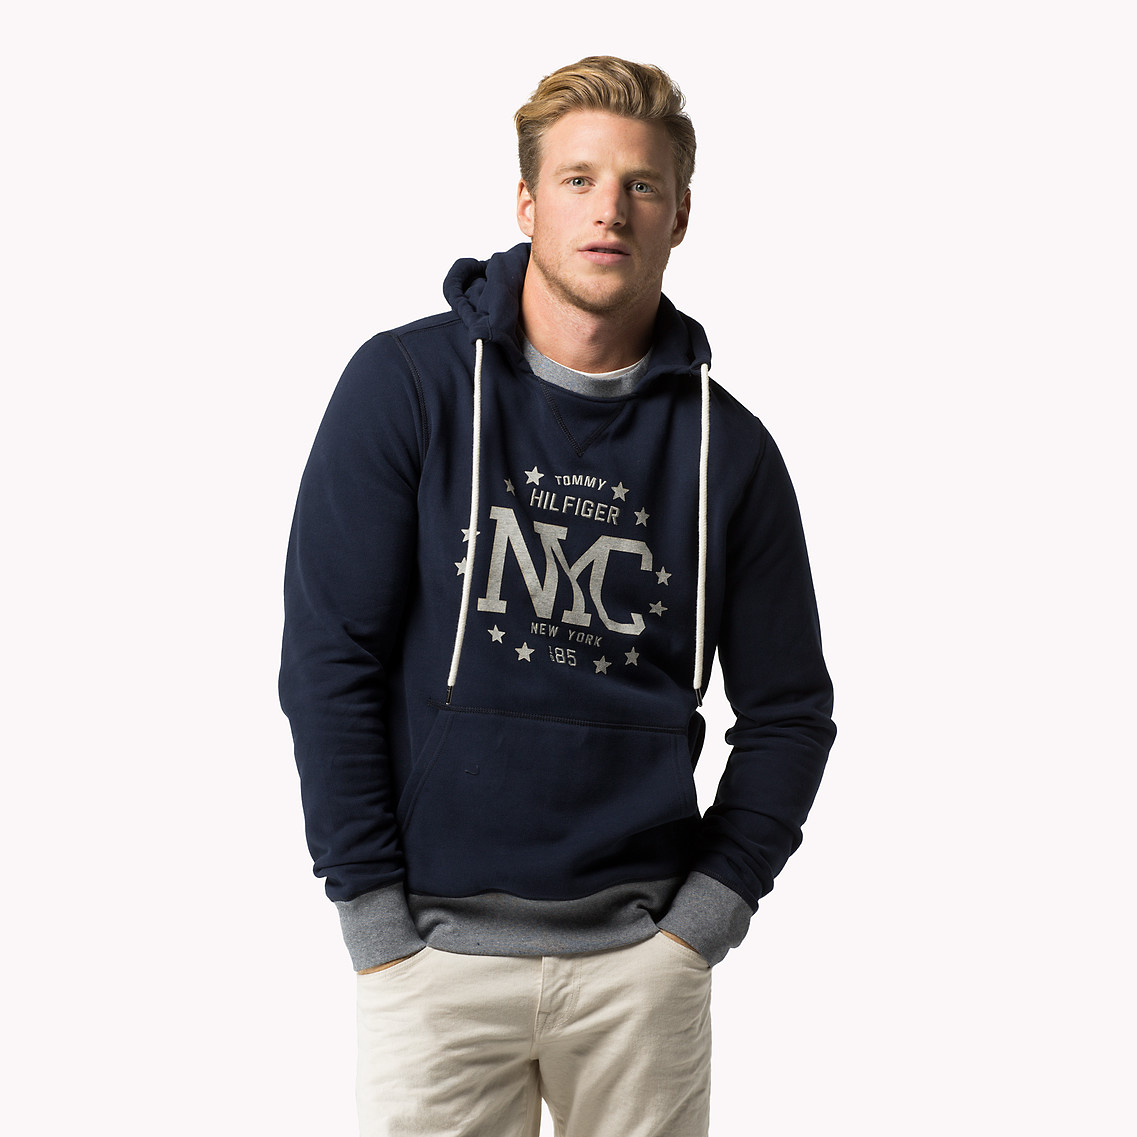 1a0206c71c240 Tommy Hilfiger Cotton Blend Hoody in Blue for Men - Lyst